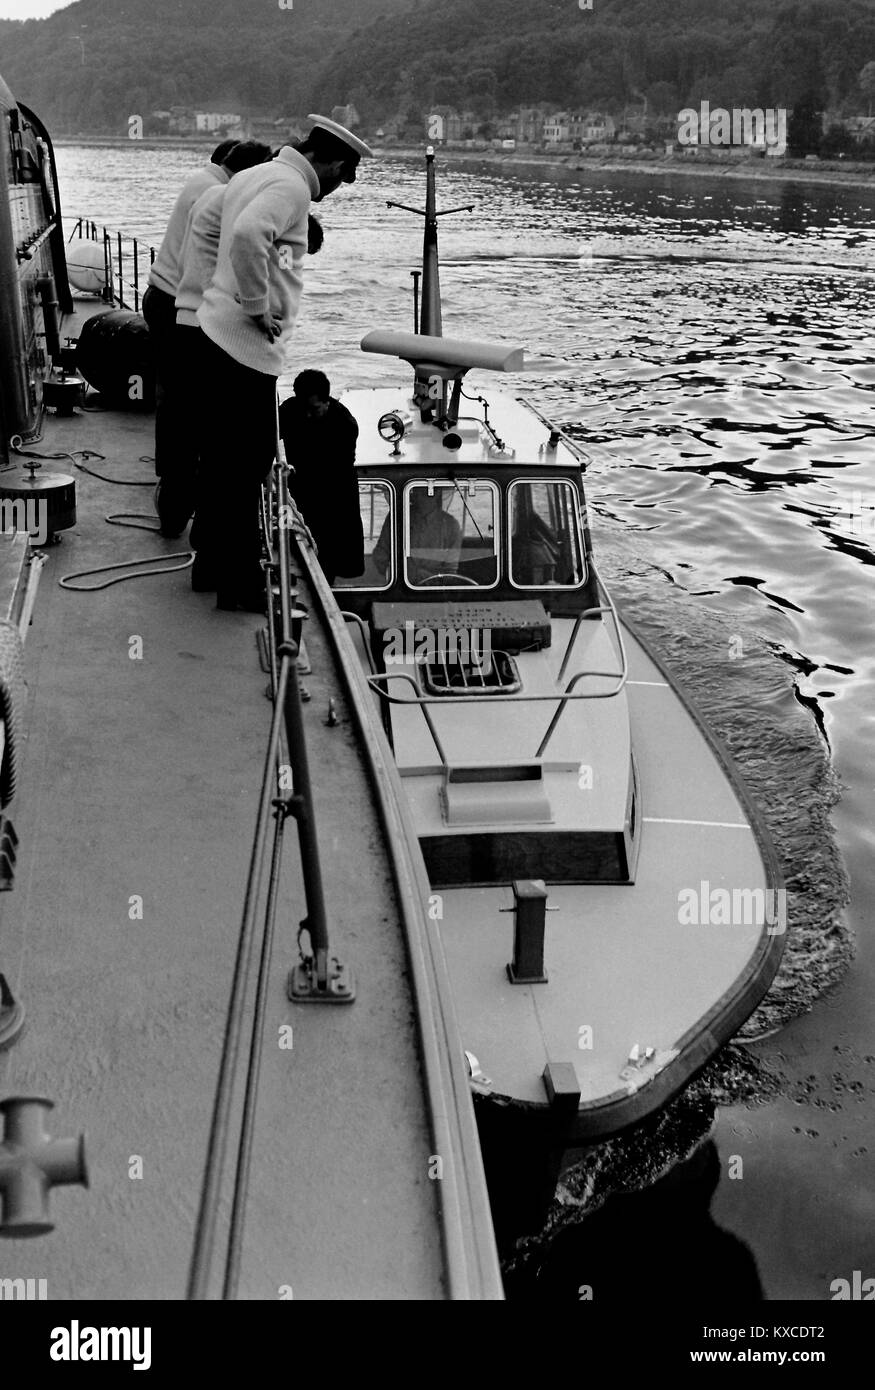 AJAXNETPHOTO. 1971. DUCLAIR, RIVER SEINE, FRANCE. - 38 KNOTS TO LE HAVRE - HMS SABRE VOYAGE TO PARIS - TAKING ON - Stock Image